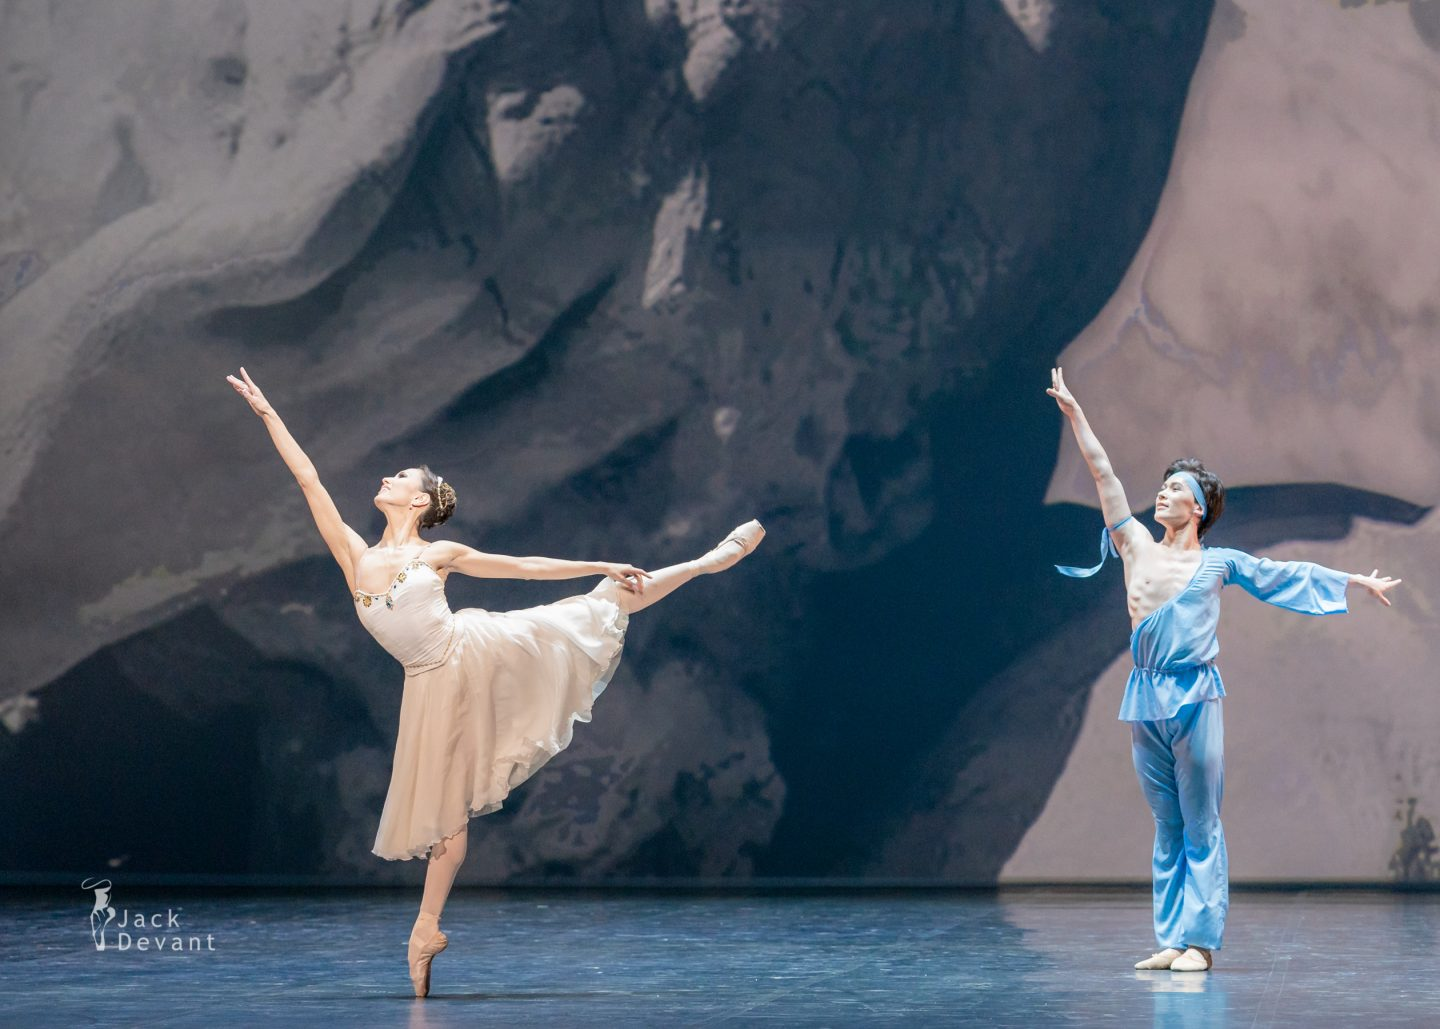 Madina Basbaeva and Erkin Rakhmatullaev in pas de deux from The Talisman 22